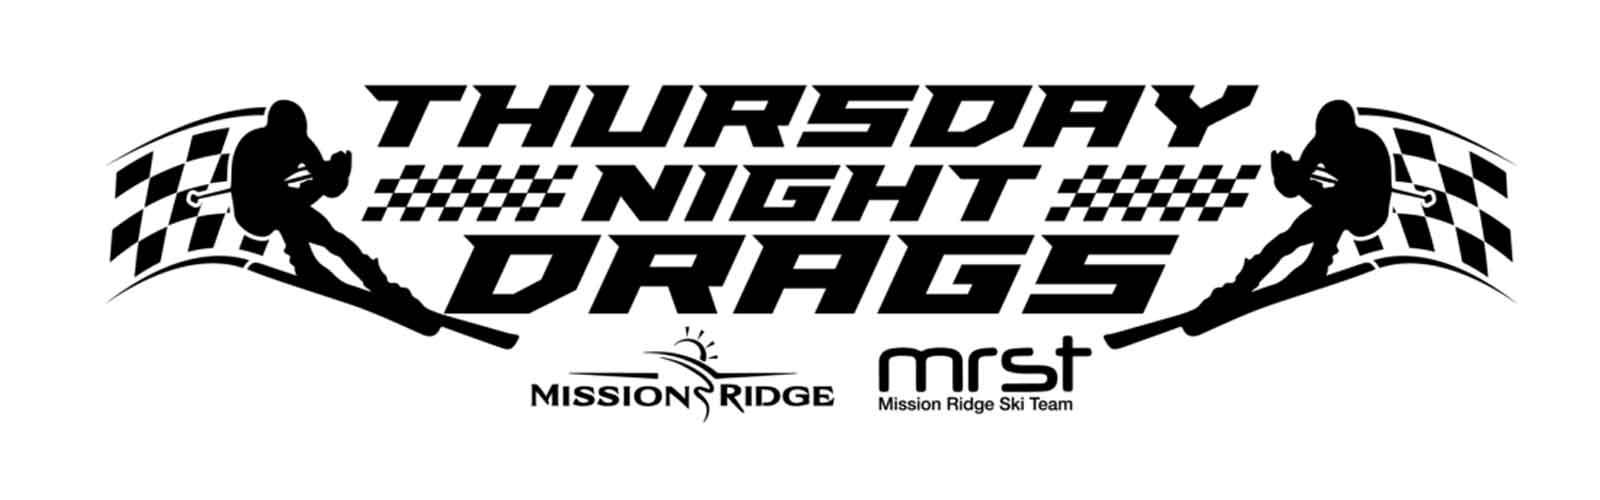 Two skier logos surrounding a Thursday Night Drag call out with MRST and Mission ridge logo